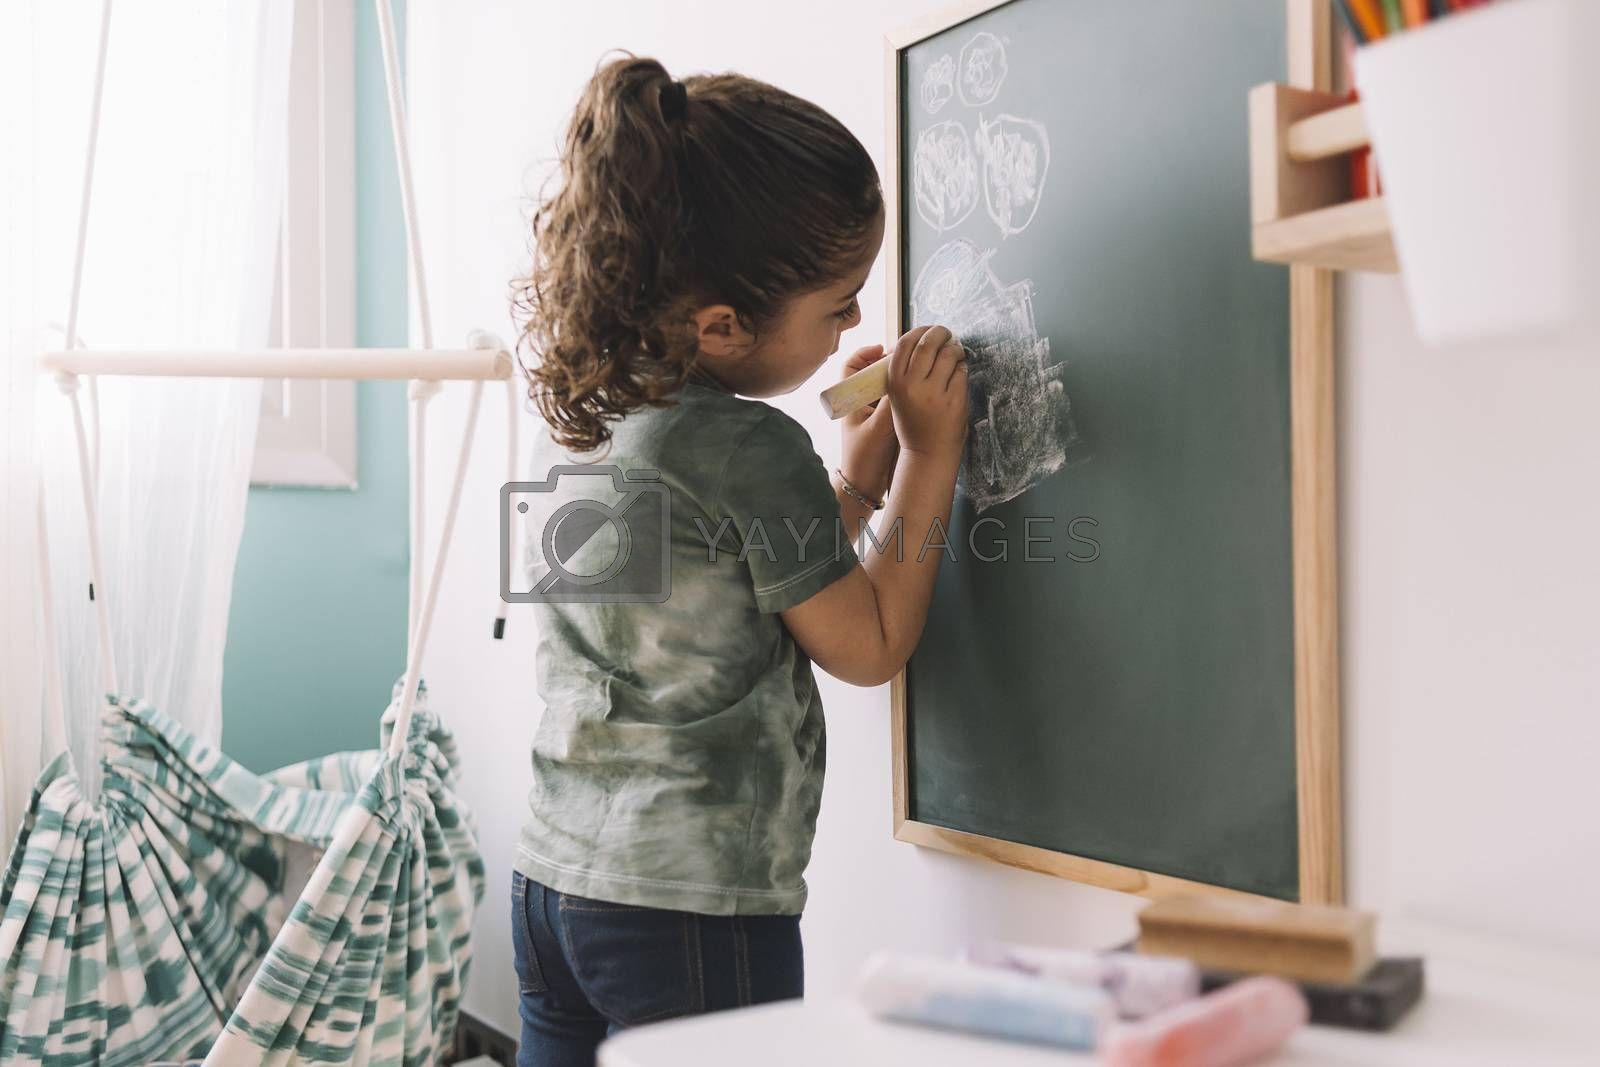 little girl drawing on a blackboard at her room by raulmellado